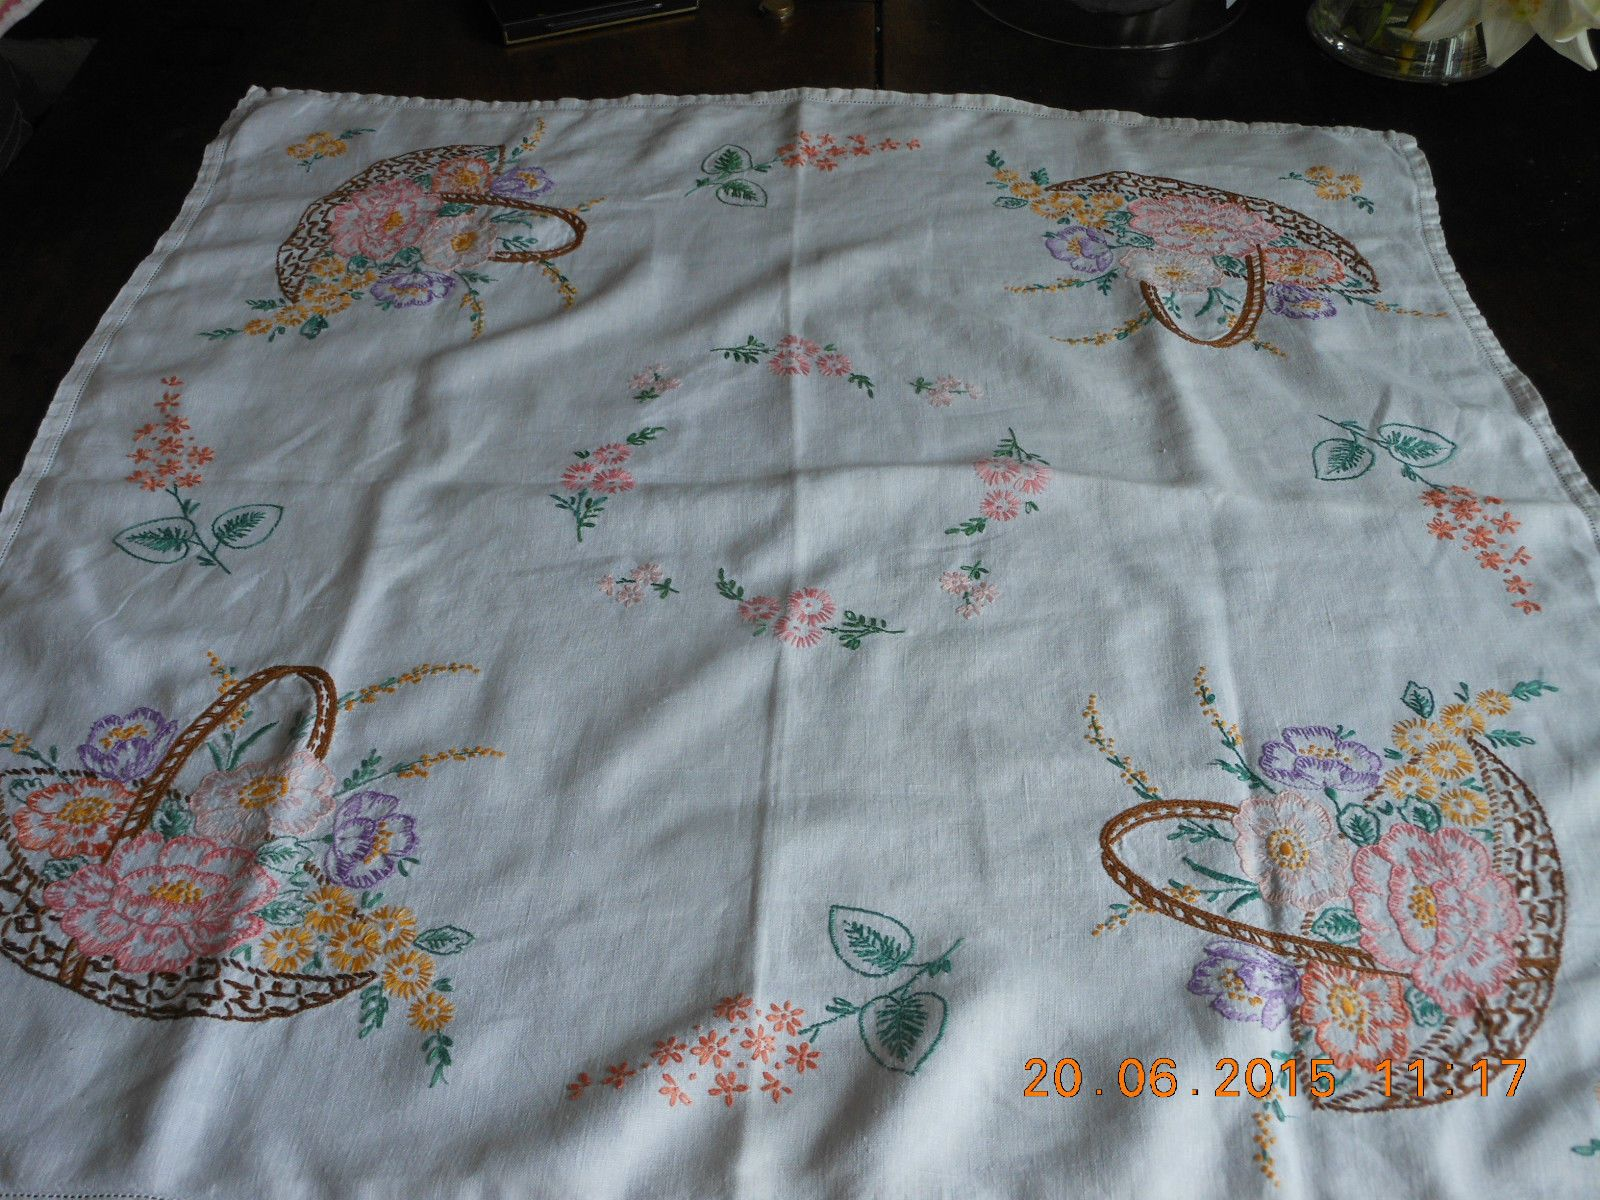 VINTAGE WHITE LINEN TABLECLOTH HAND EMBROIDERY BASKET PINK FLOWERS MIMOSA PICNIC | eBay